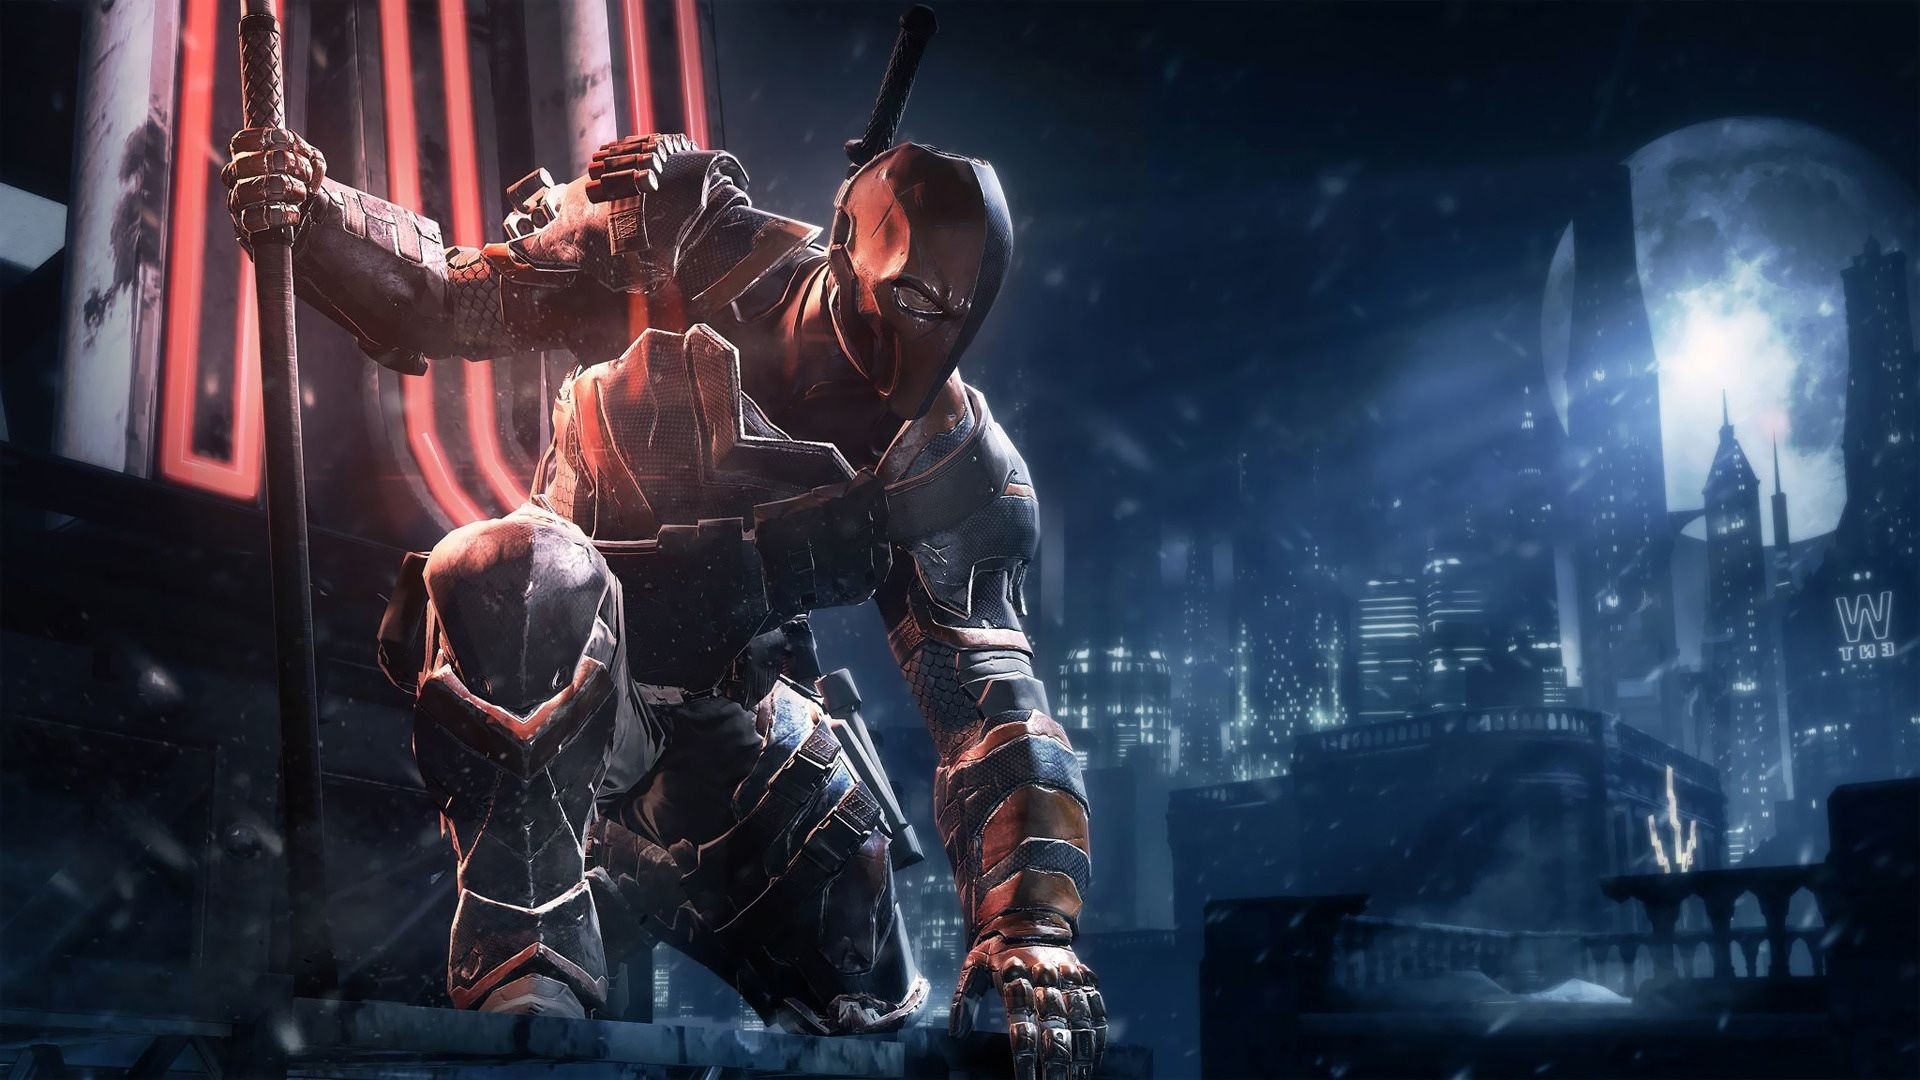 1920x1080 Deathstroke Batman Arkham Origins | HD Games Wallpaper Free Download ...